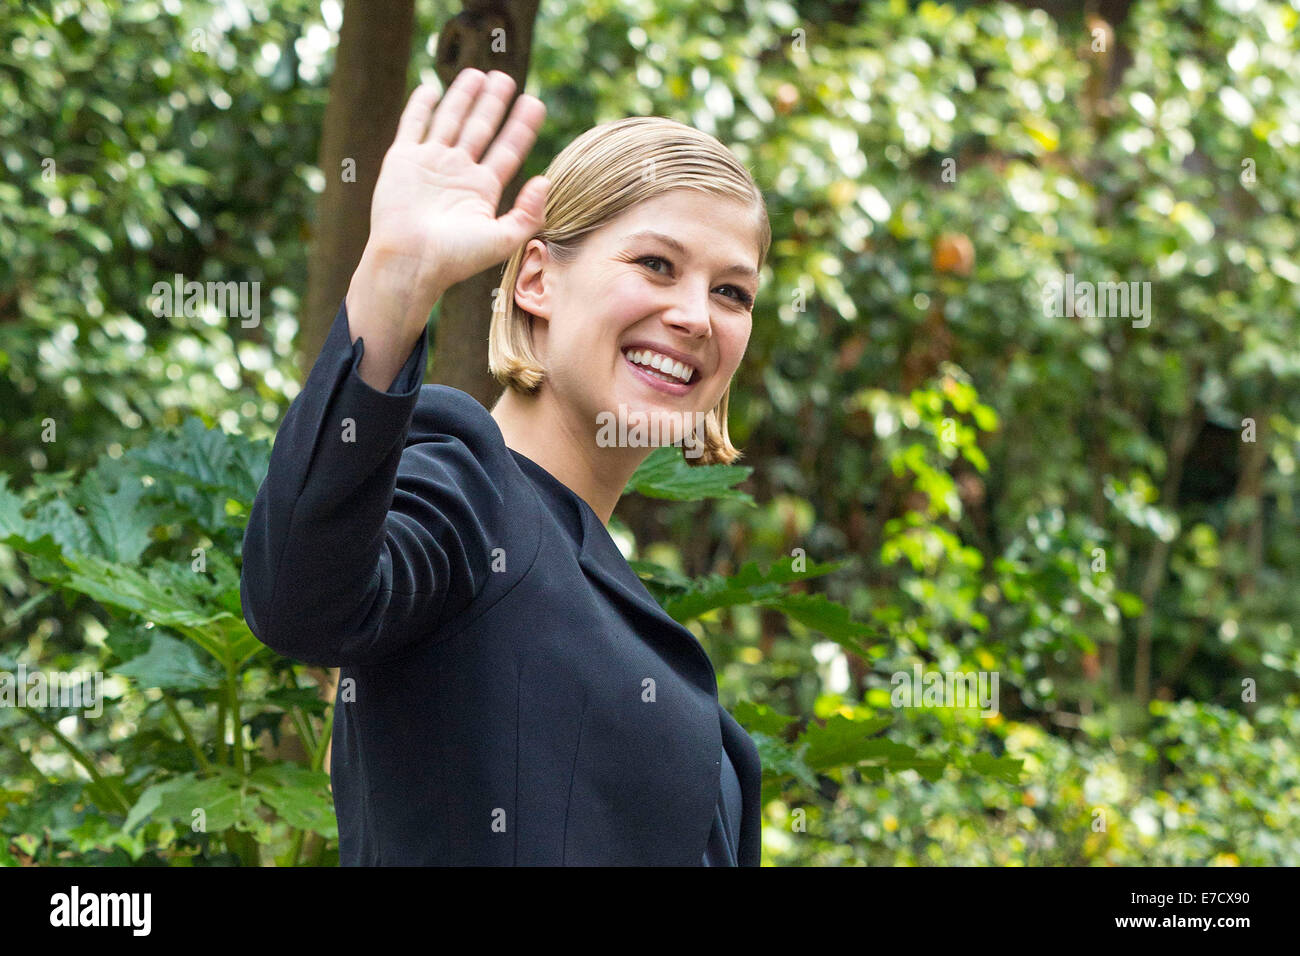 Rosamund Pike attending the 'Gone Girl' photocall at Hotel De Russie. Rome on Septmber 12, 2014 - Stock Image